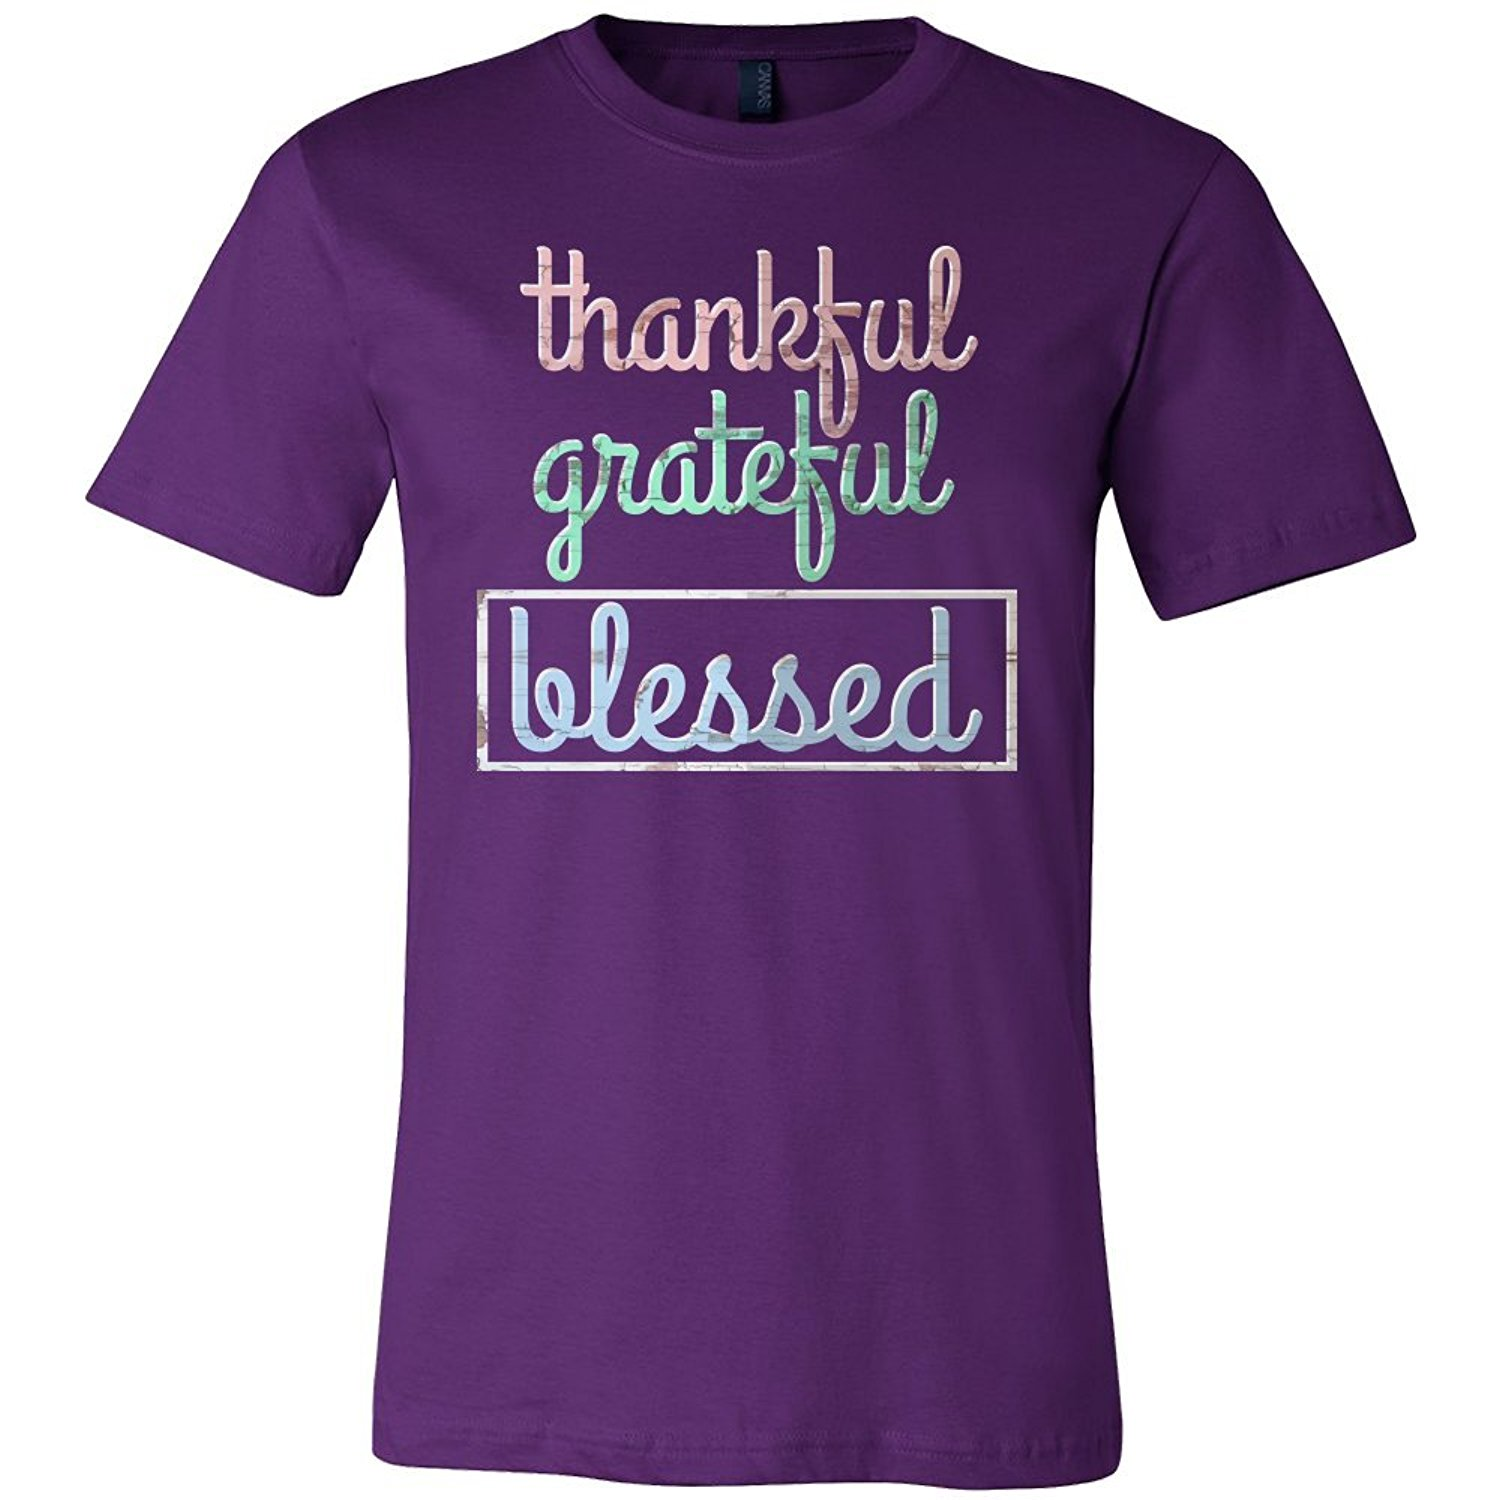 Inspiring Life Quotes Tee Shirt Thankful,Grateful,Blessed Inspirational Quote T Shirt